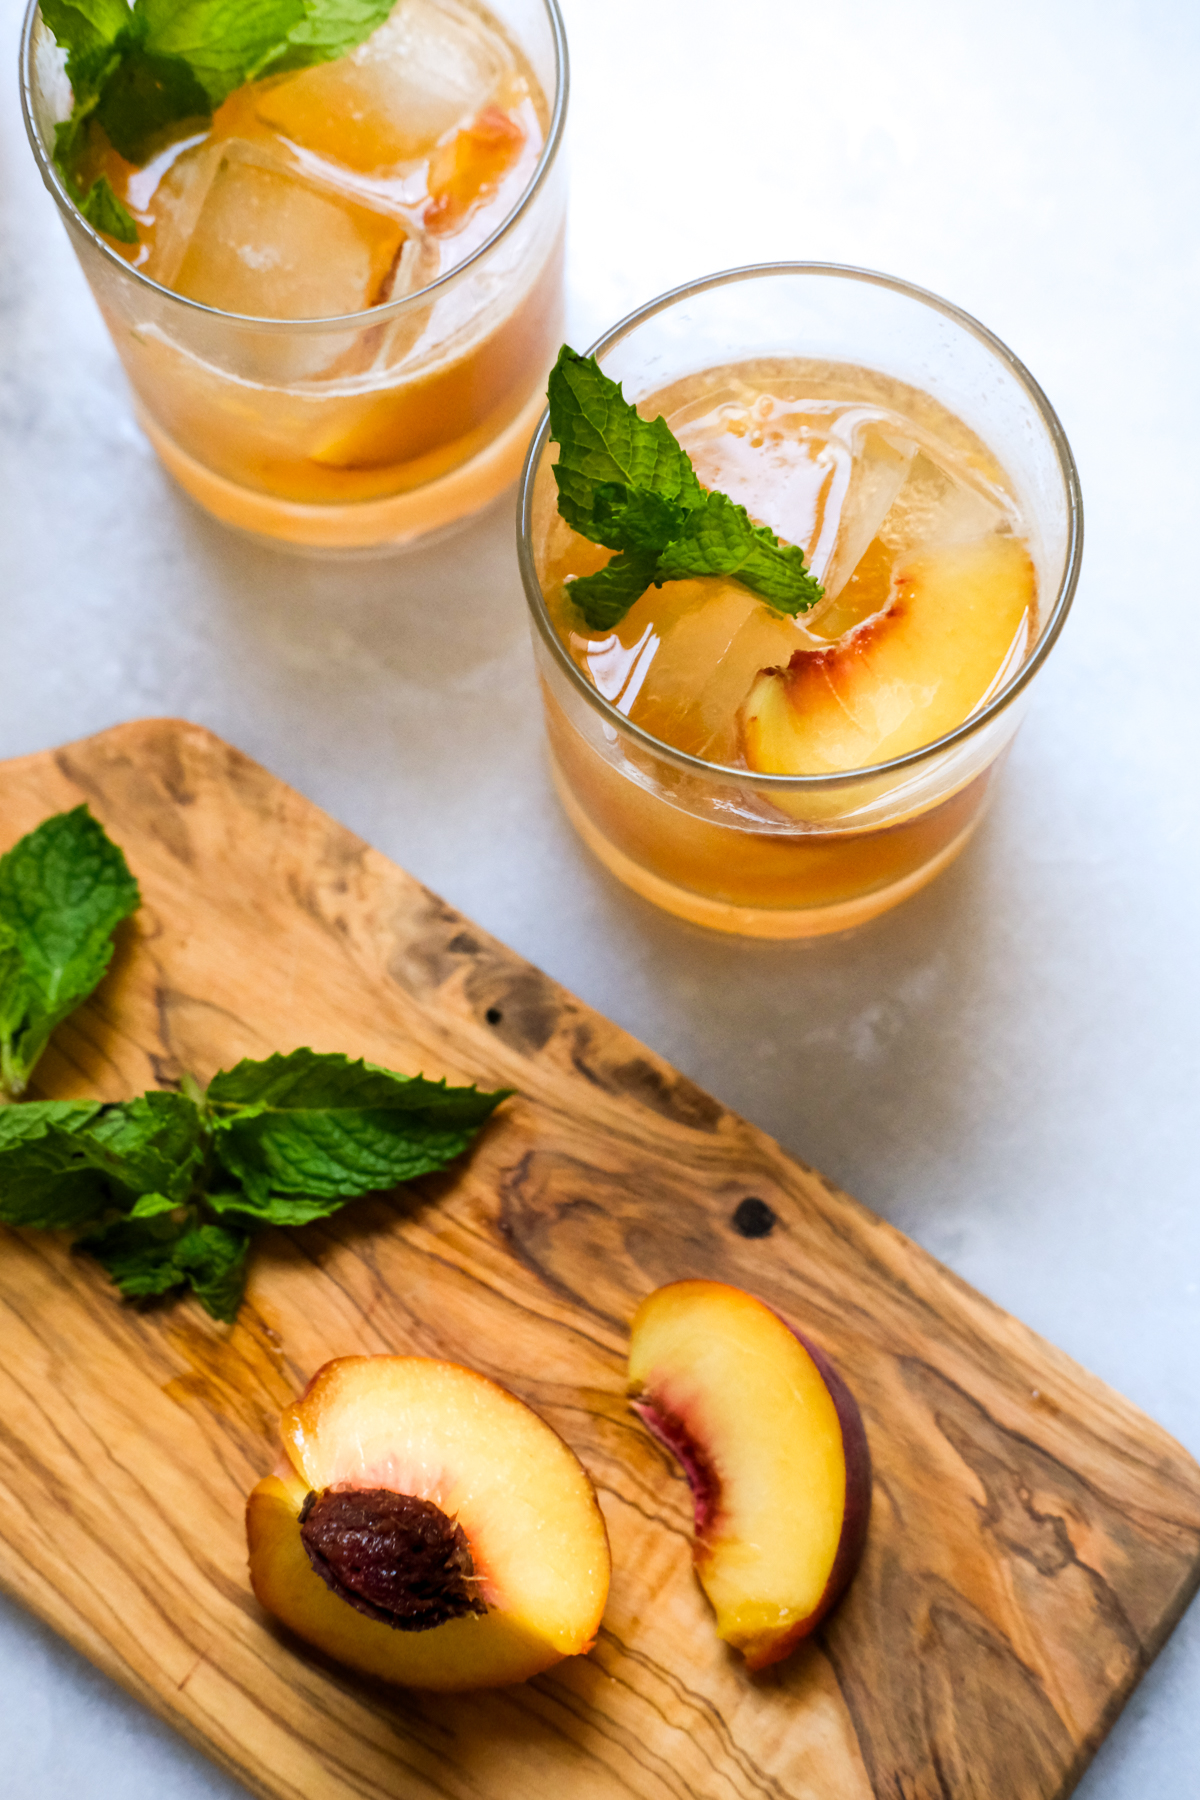 peach bourbon smash cocktails with peach slices and mint garnish